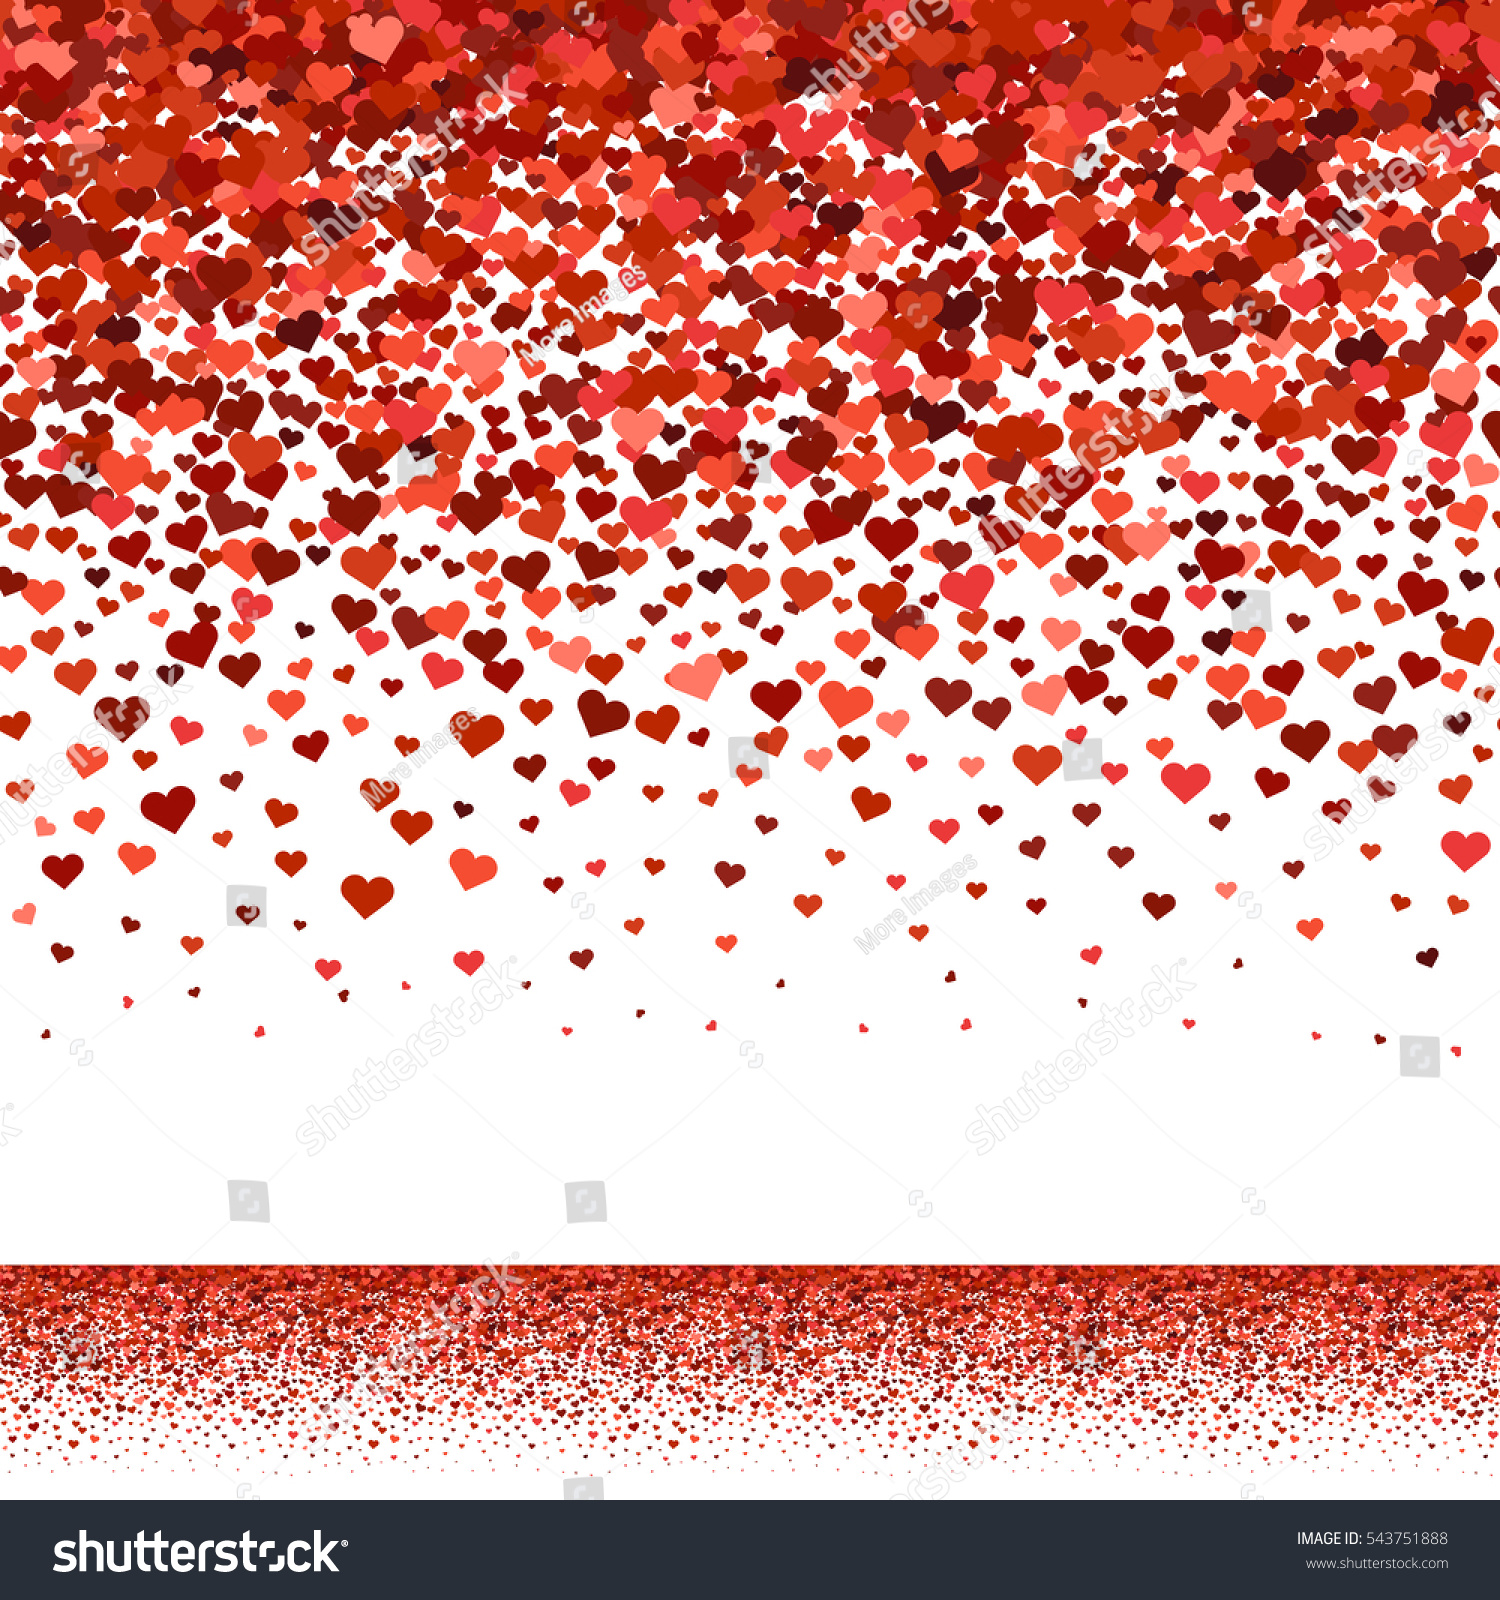 Seamless Red Hearts Fall Upper Border Stock Vector 543751888 - Shutterstock